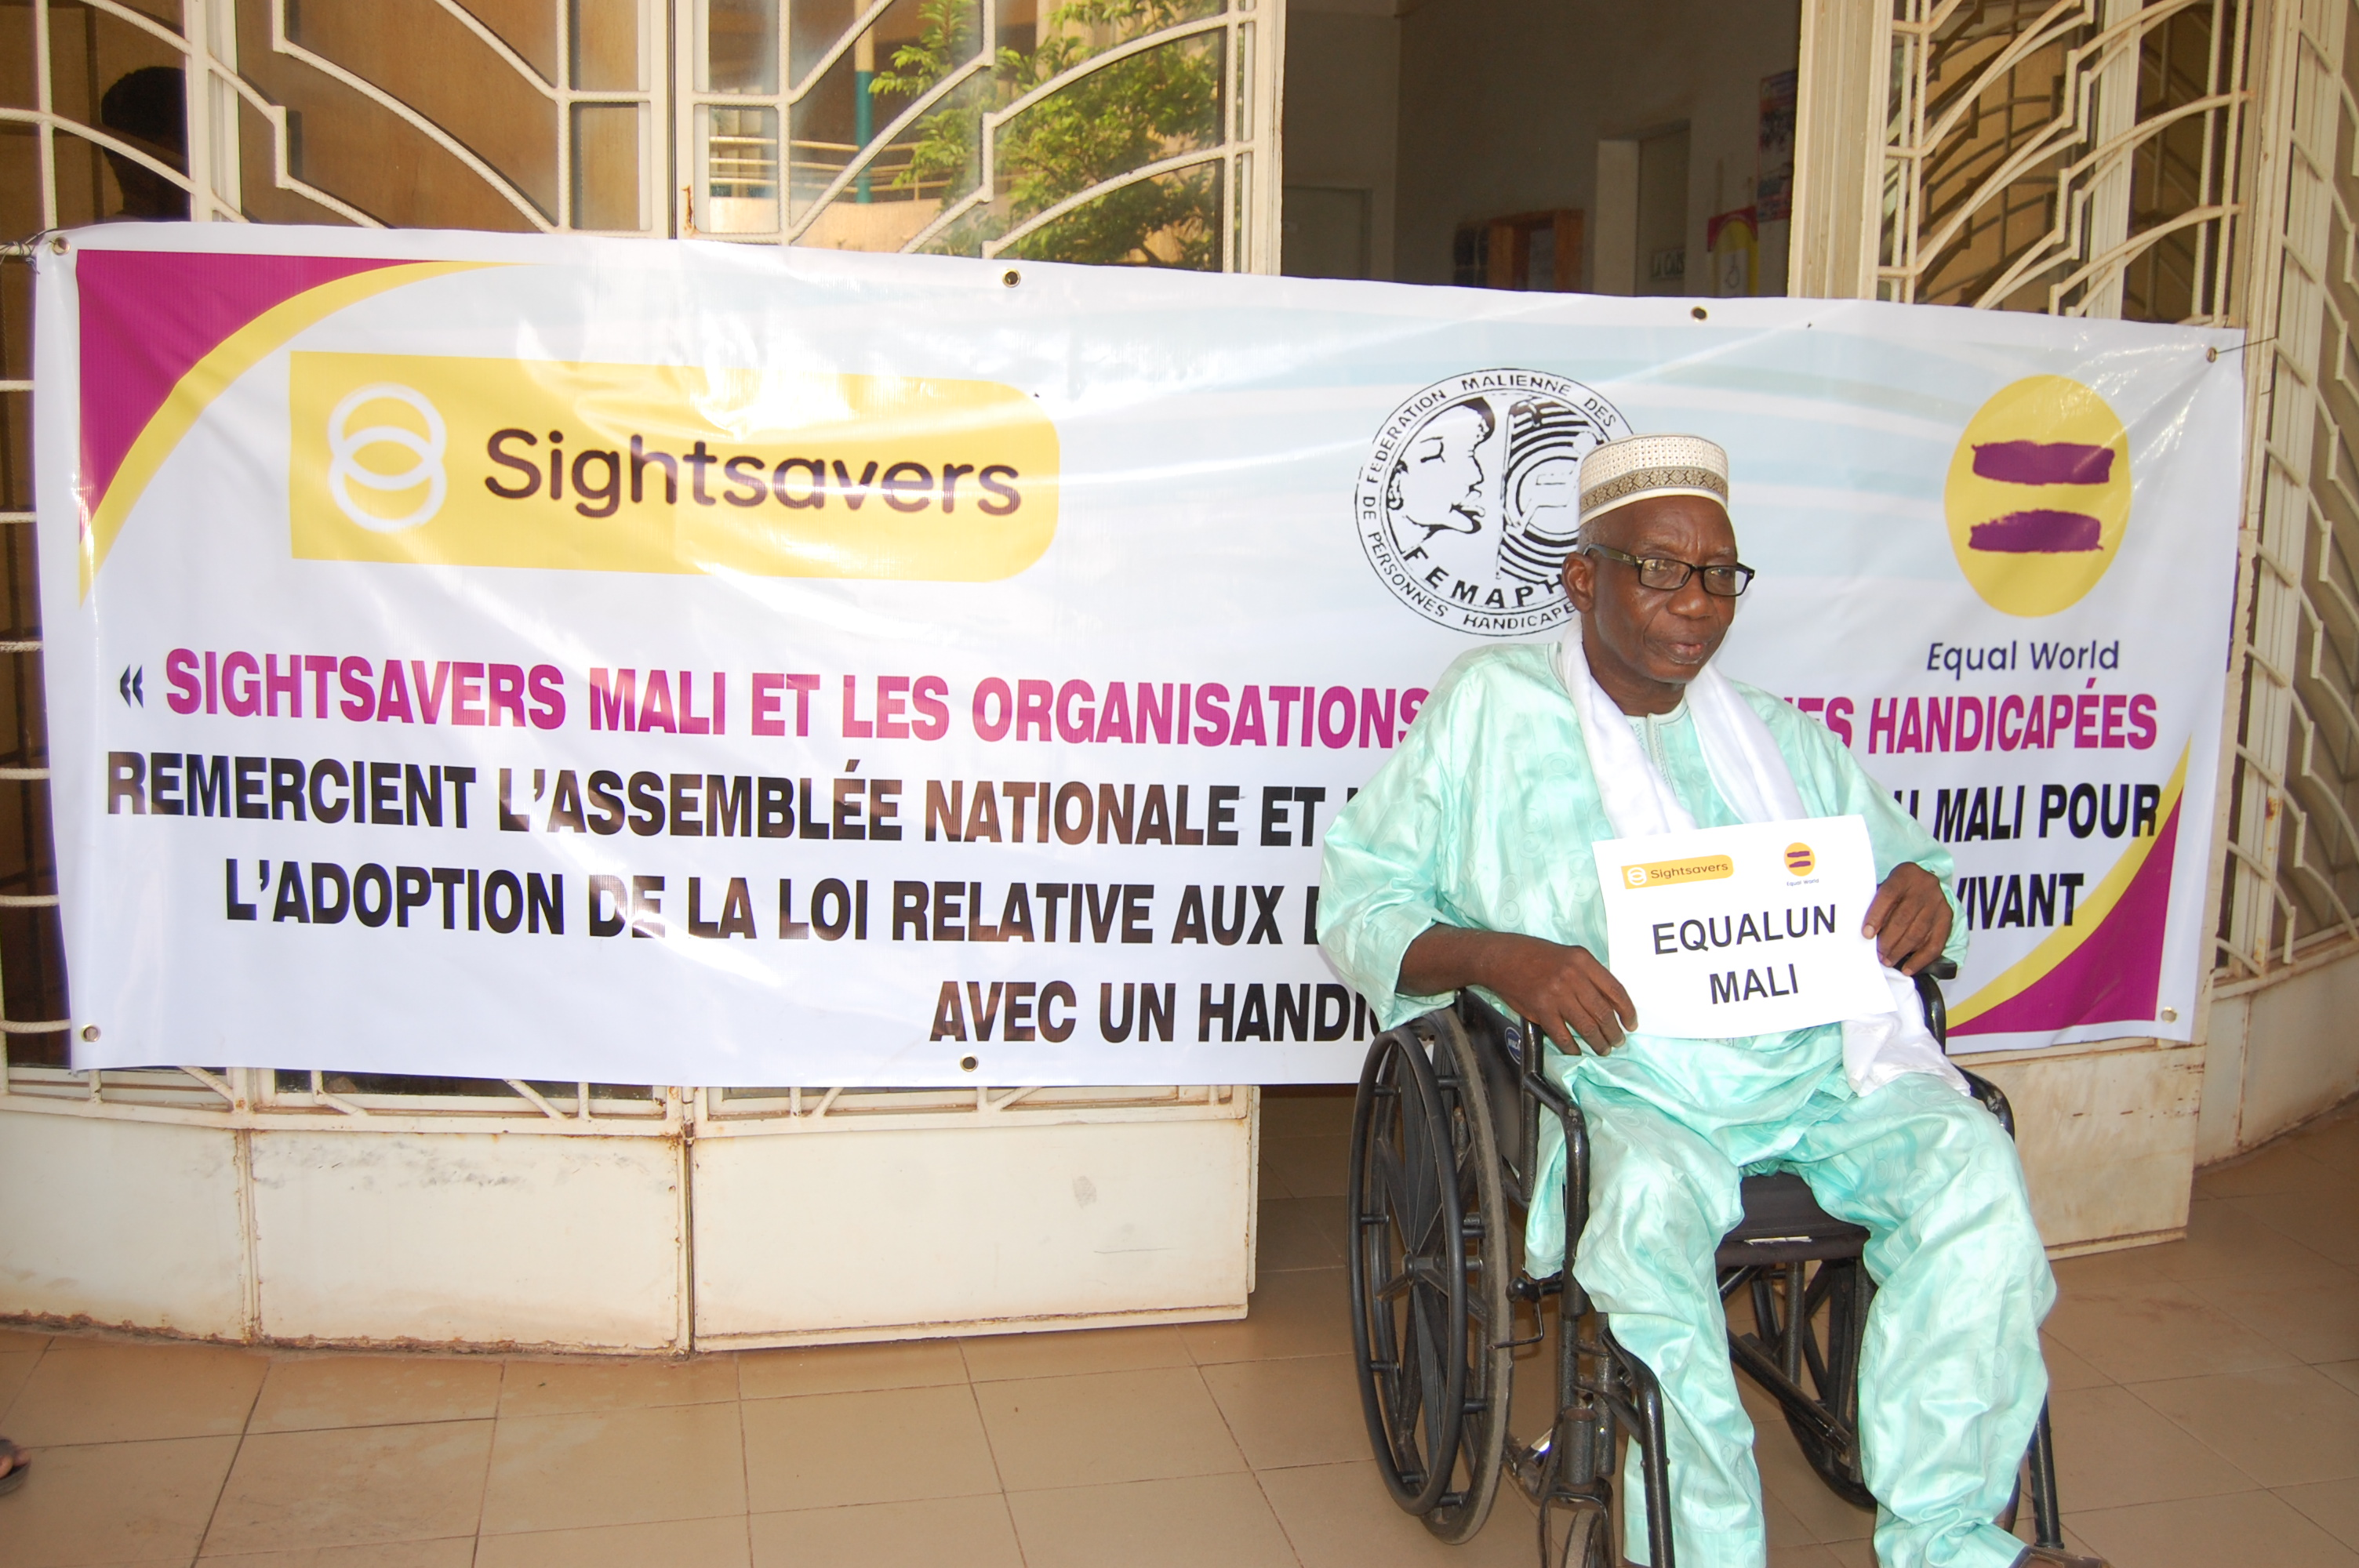 A man using a wheelchair sitting in front of a disability rights banner for the Equal World campaign.